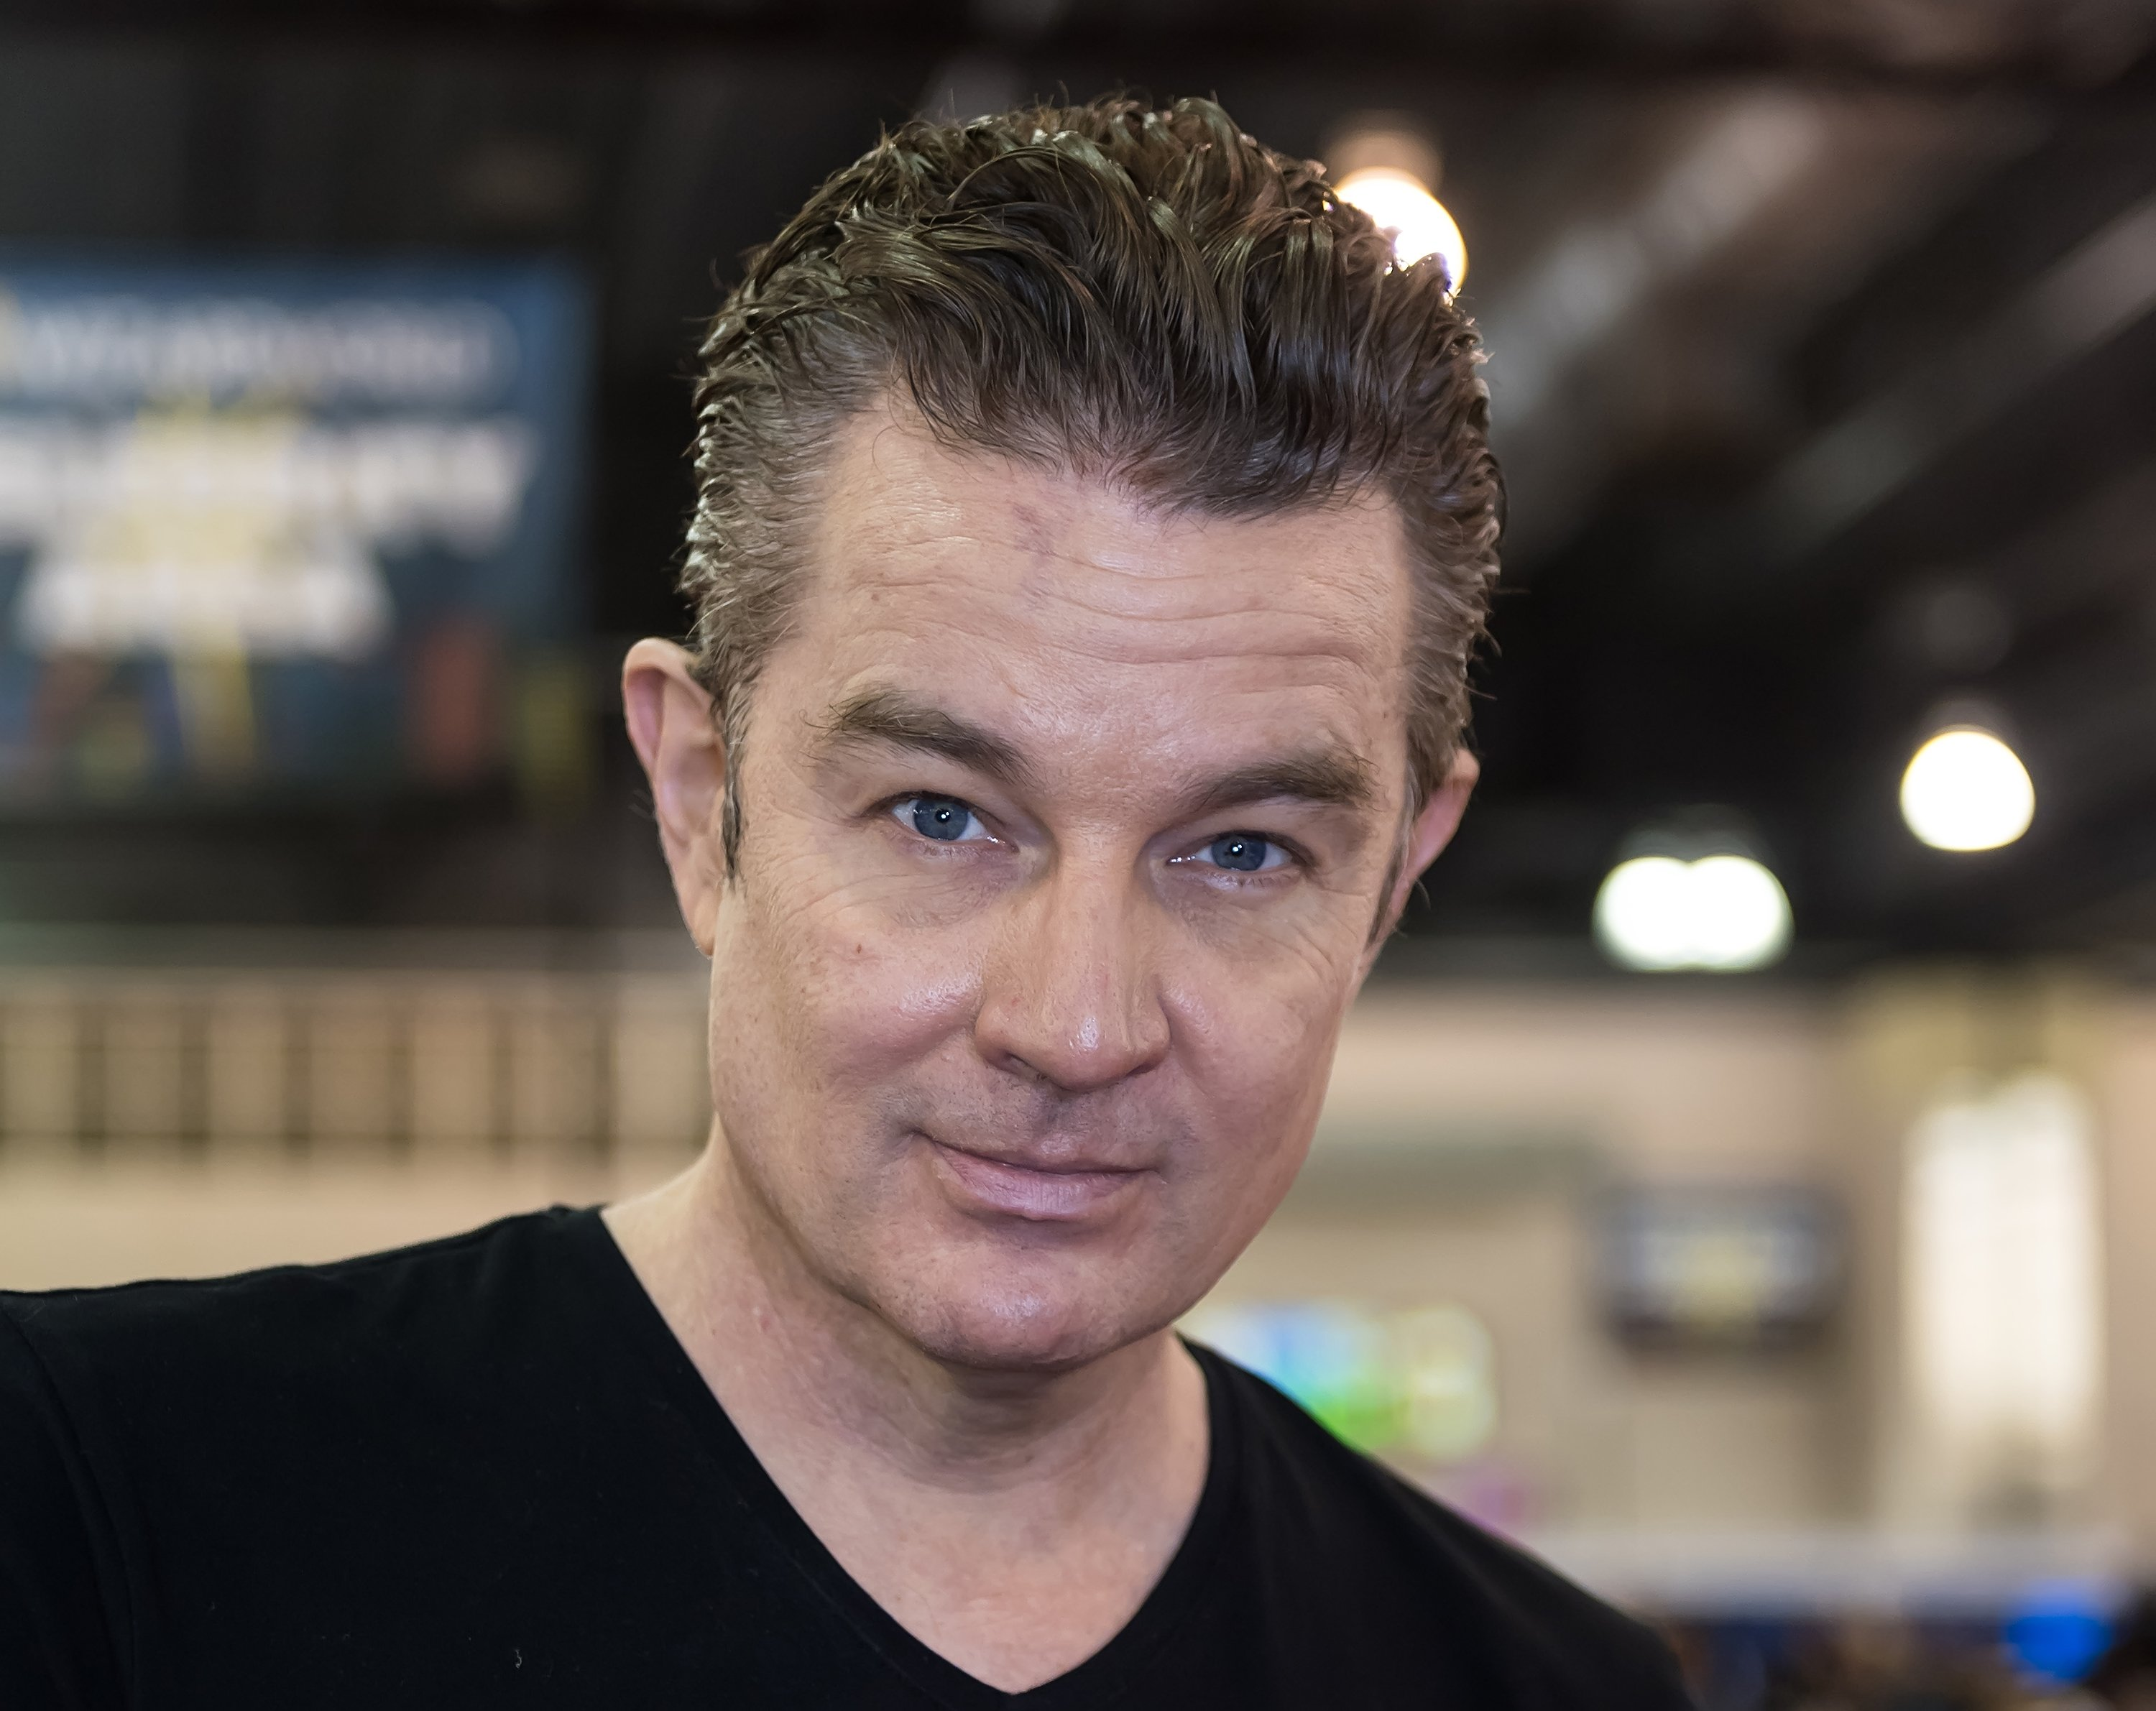 James Marsters attends the Wizard World Comic Con in Philadelphia on June 2, 2017 | Photo: Getty Images